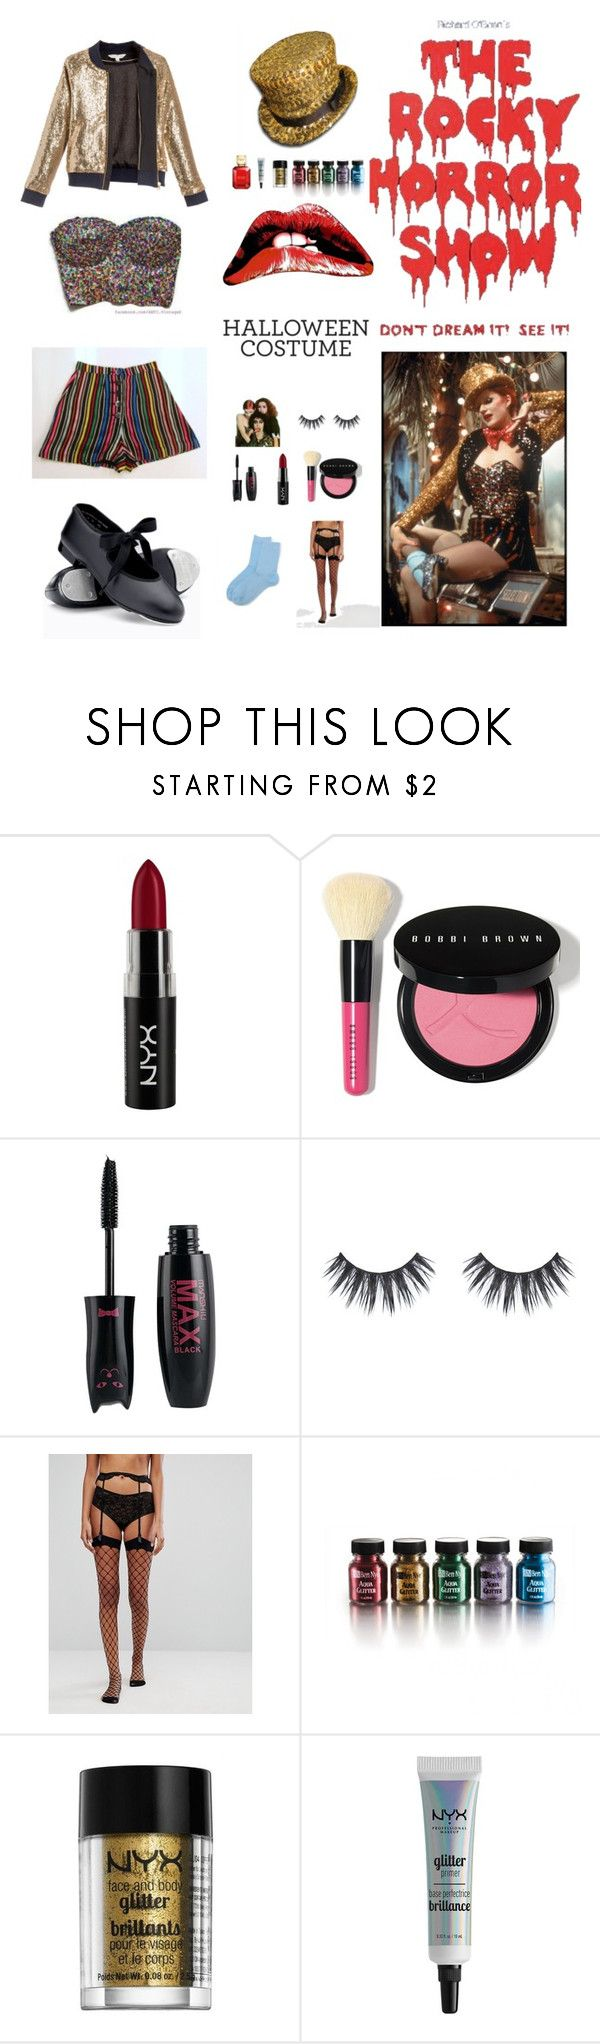 """Columbia Rocky Horror Costume"" by indieflowergirl ❤ liked on Polyvore featuring NYX, Bobbi Brown Cosmetics, ASOS and Michael Kors"